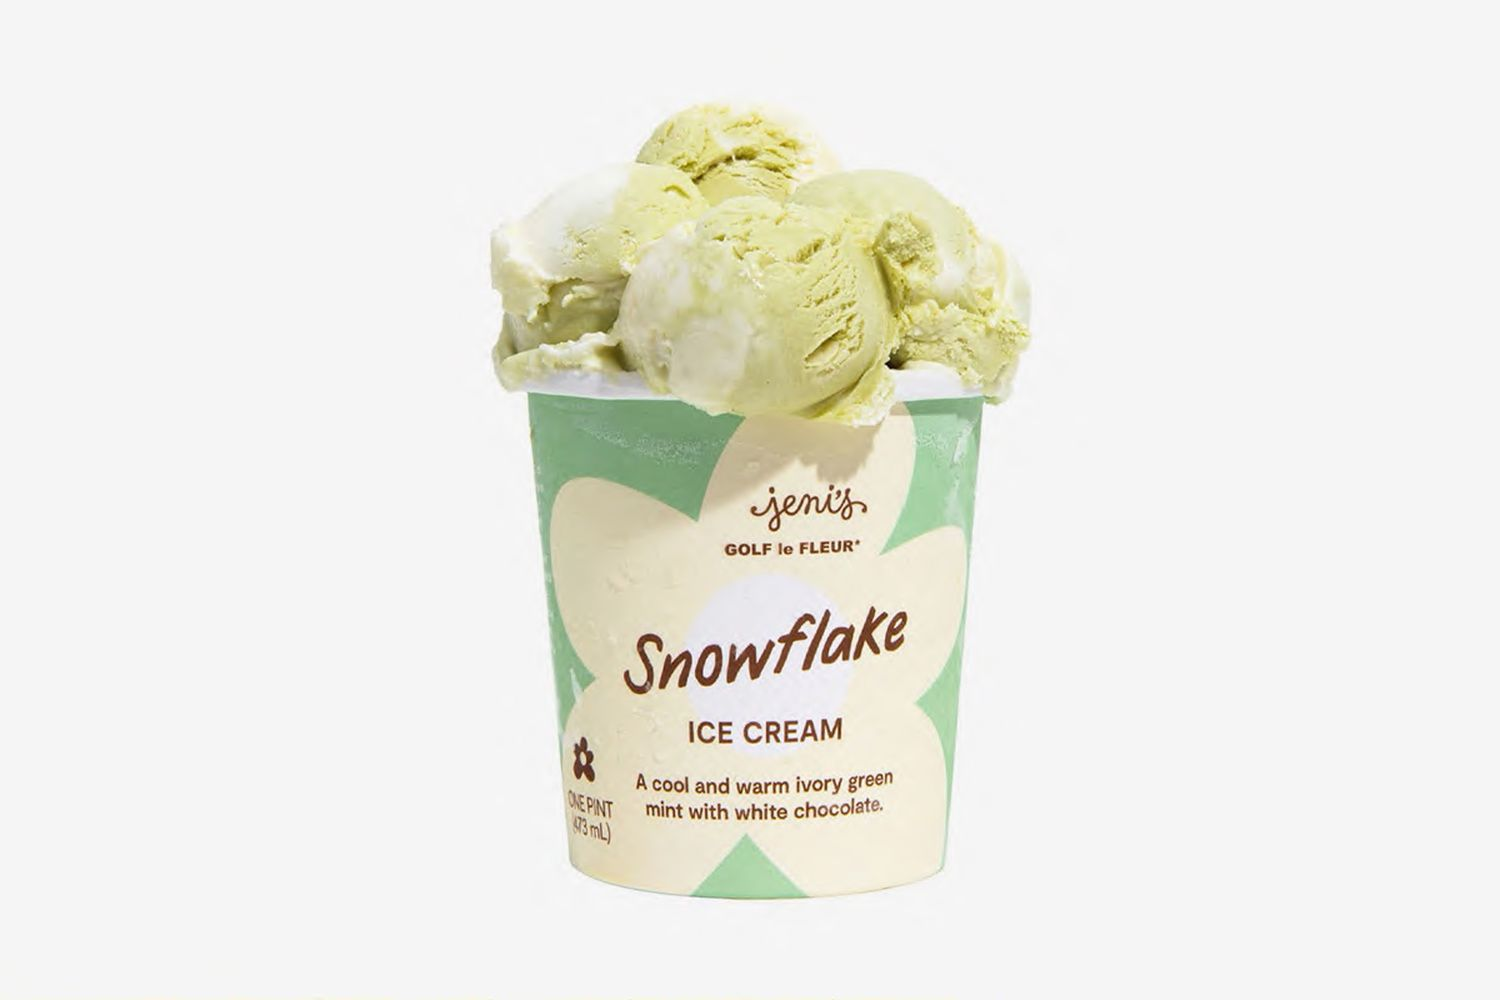 Snowflake Icecream